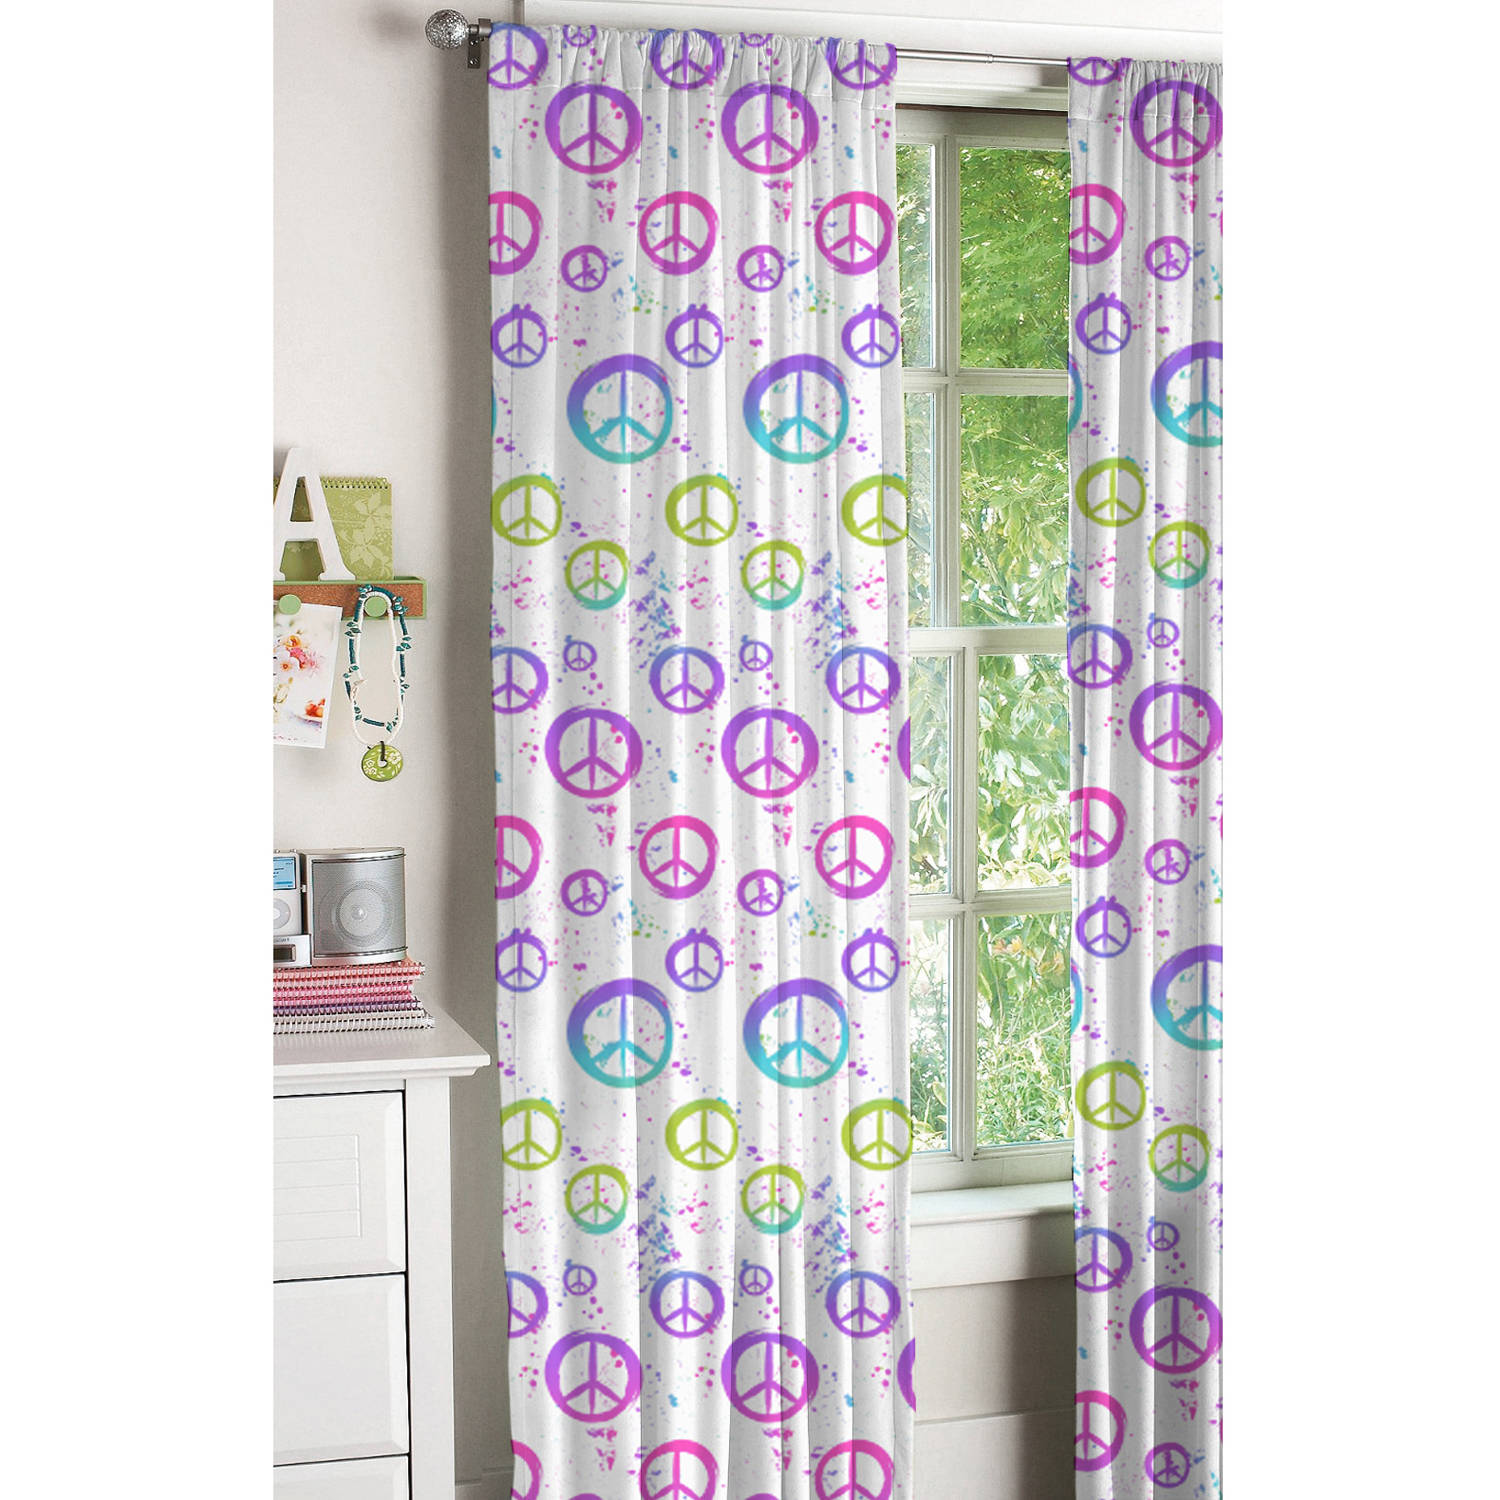 Bathroom Signs Walmart your zone peace sign kids bedroom curtains - walmart